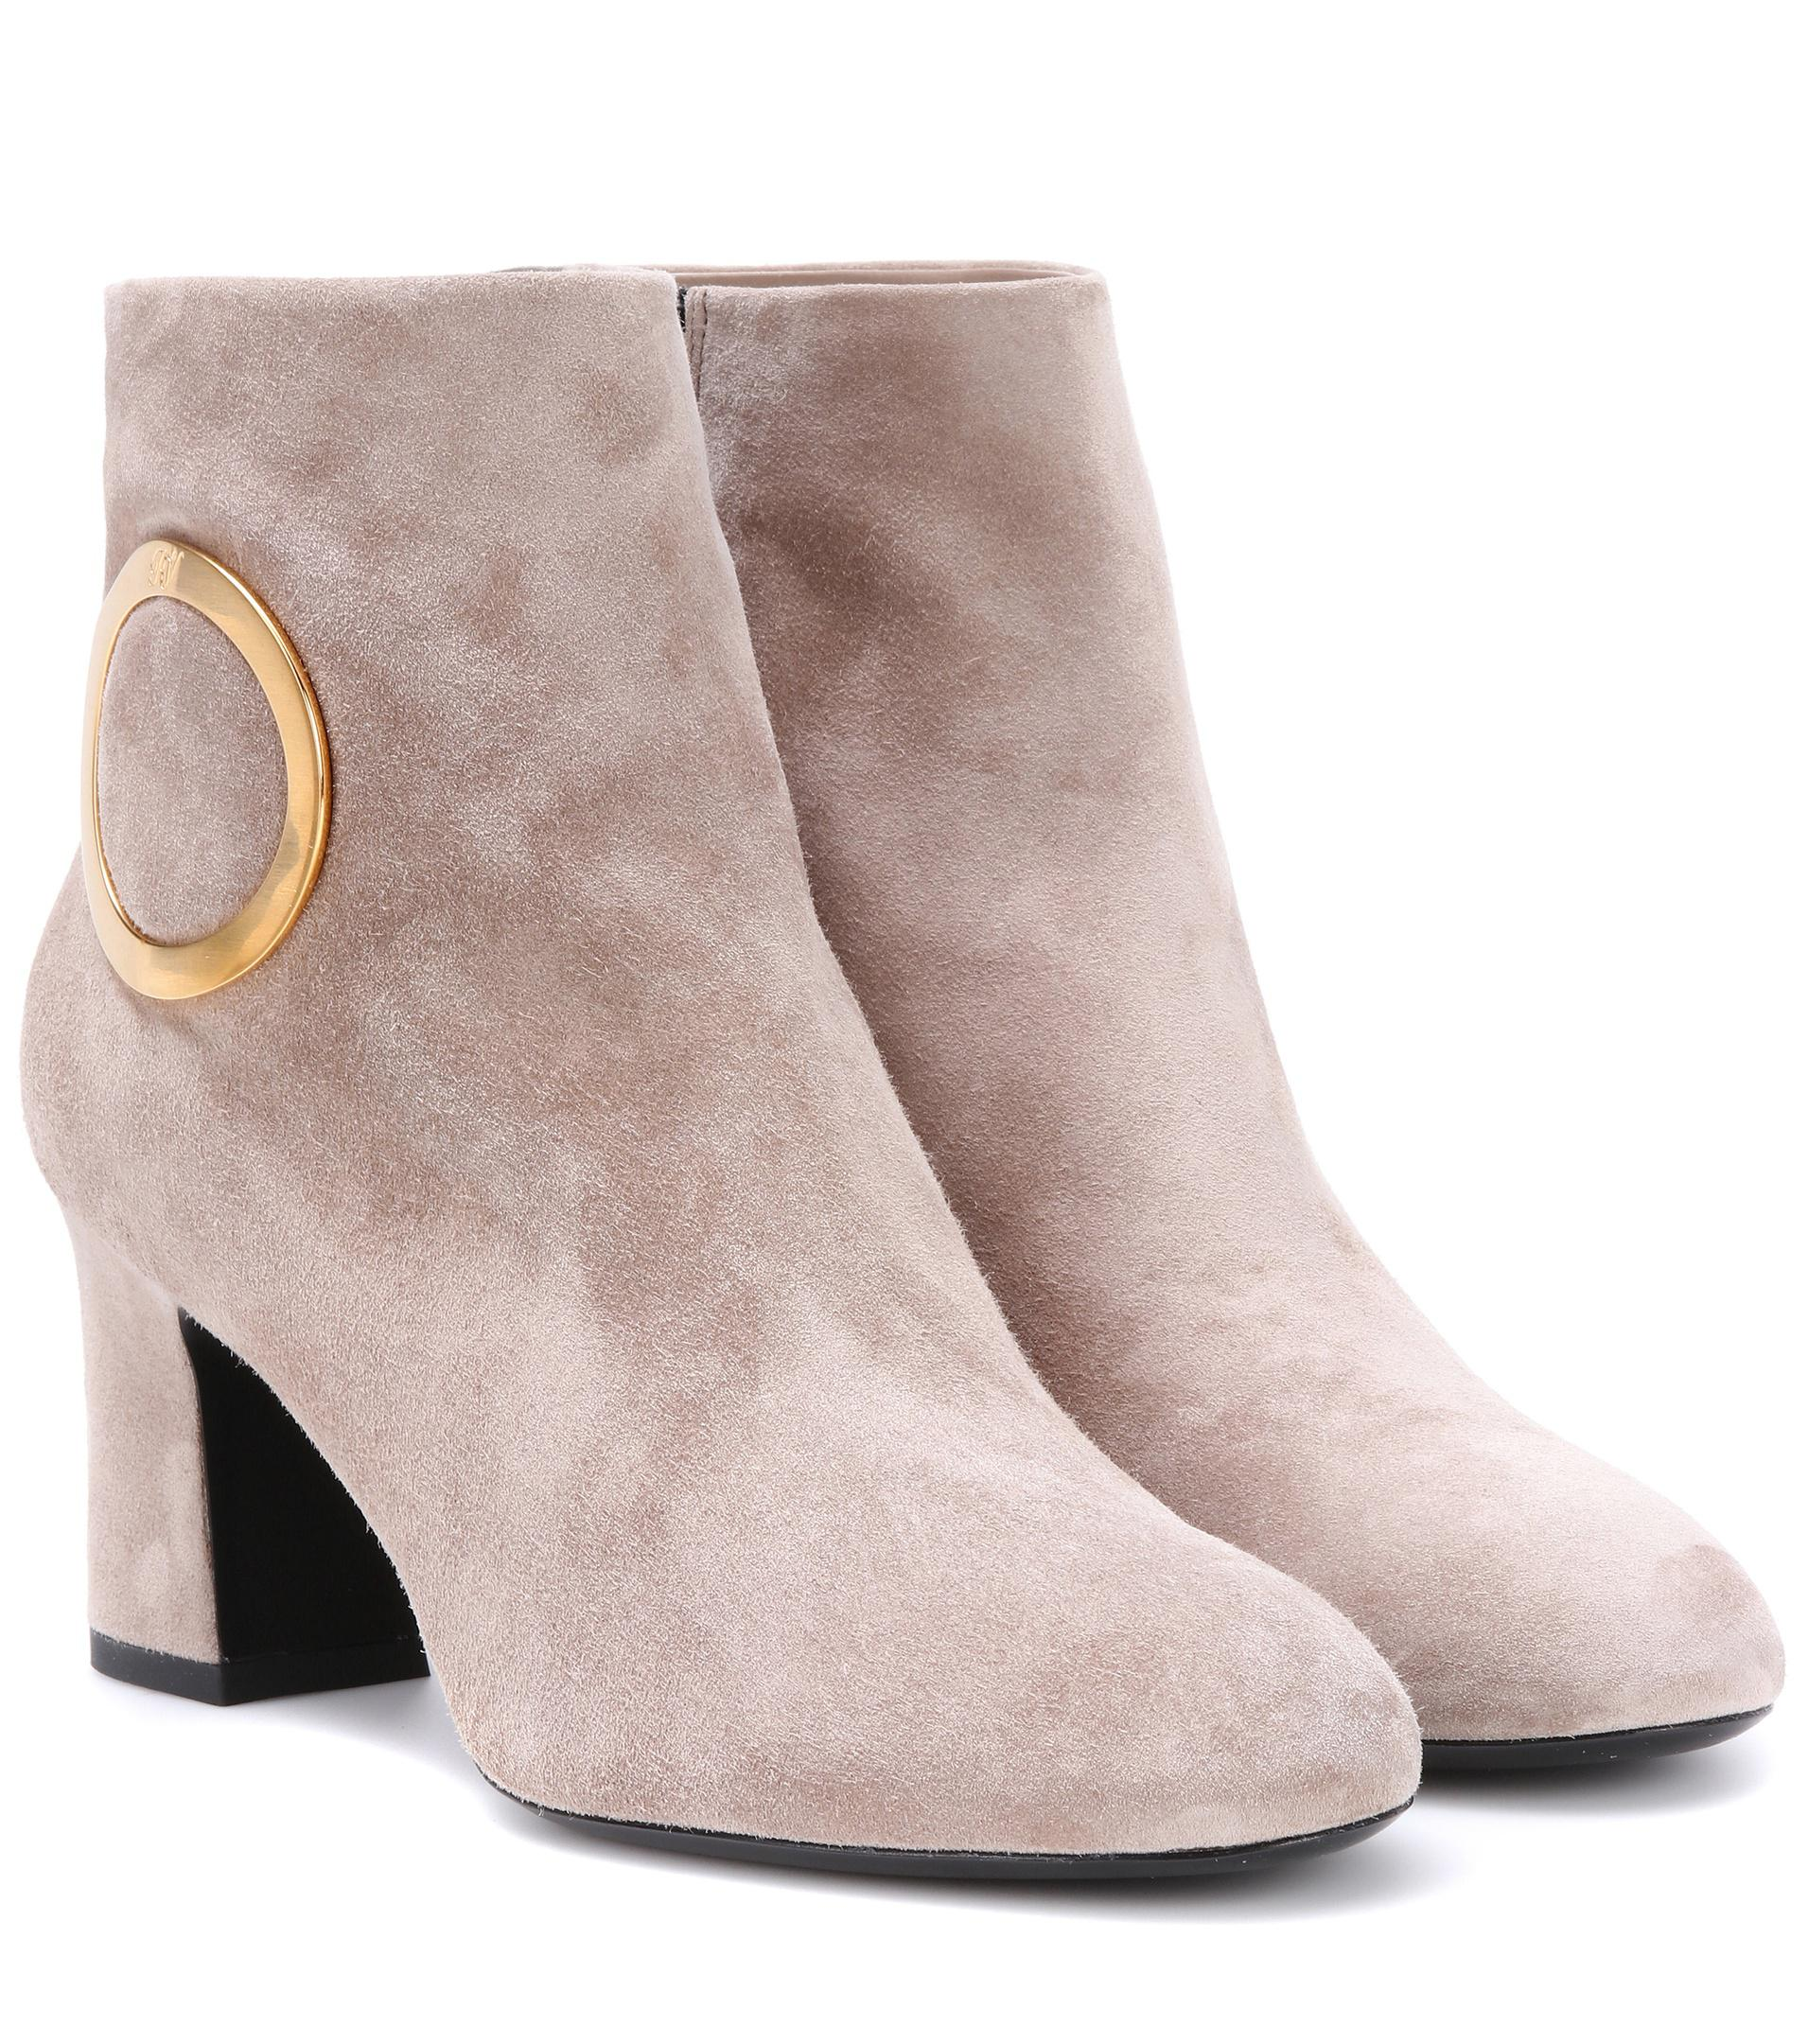 Roger Vivier Chunky Trompette suede ankle boots gUbDu